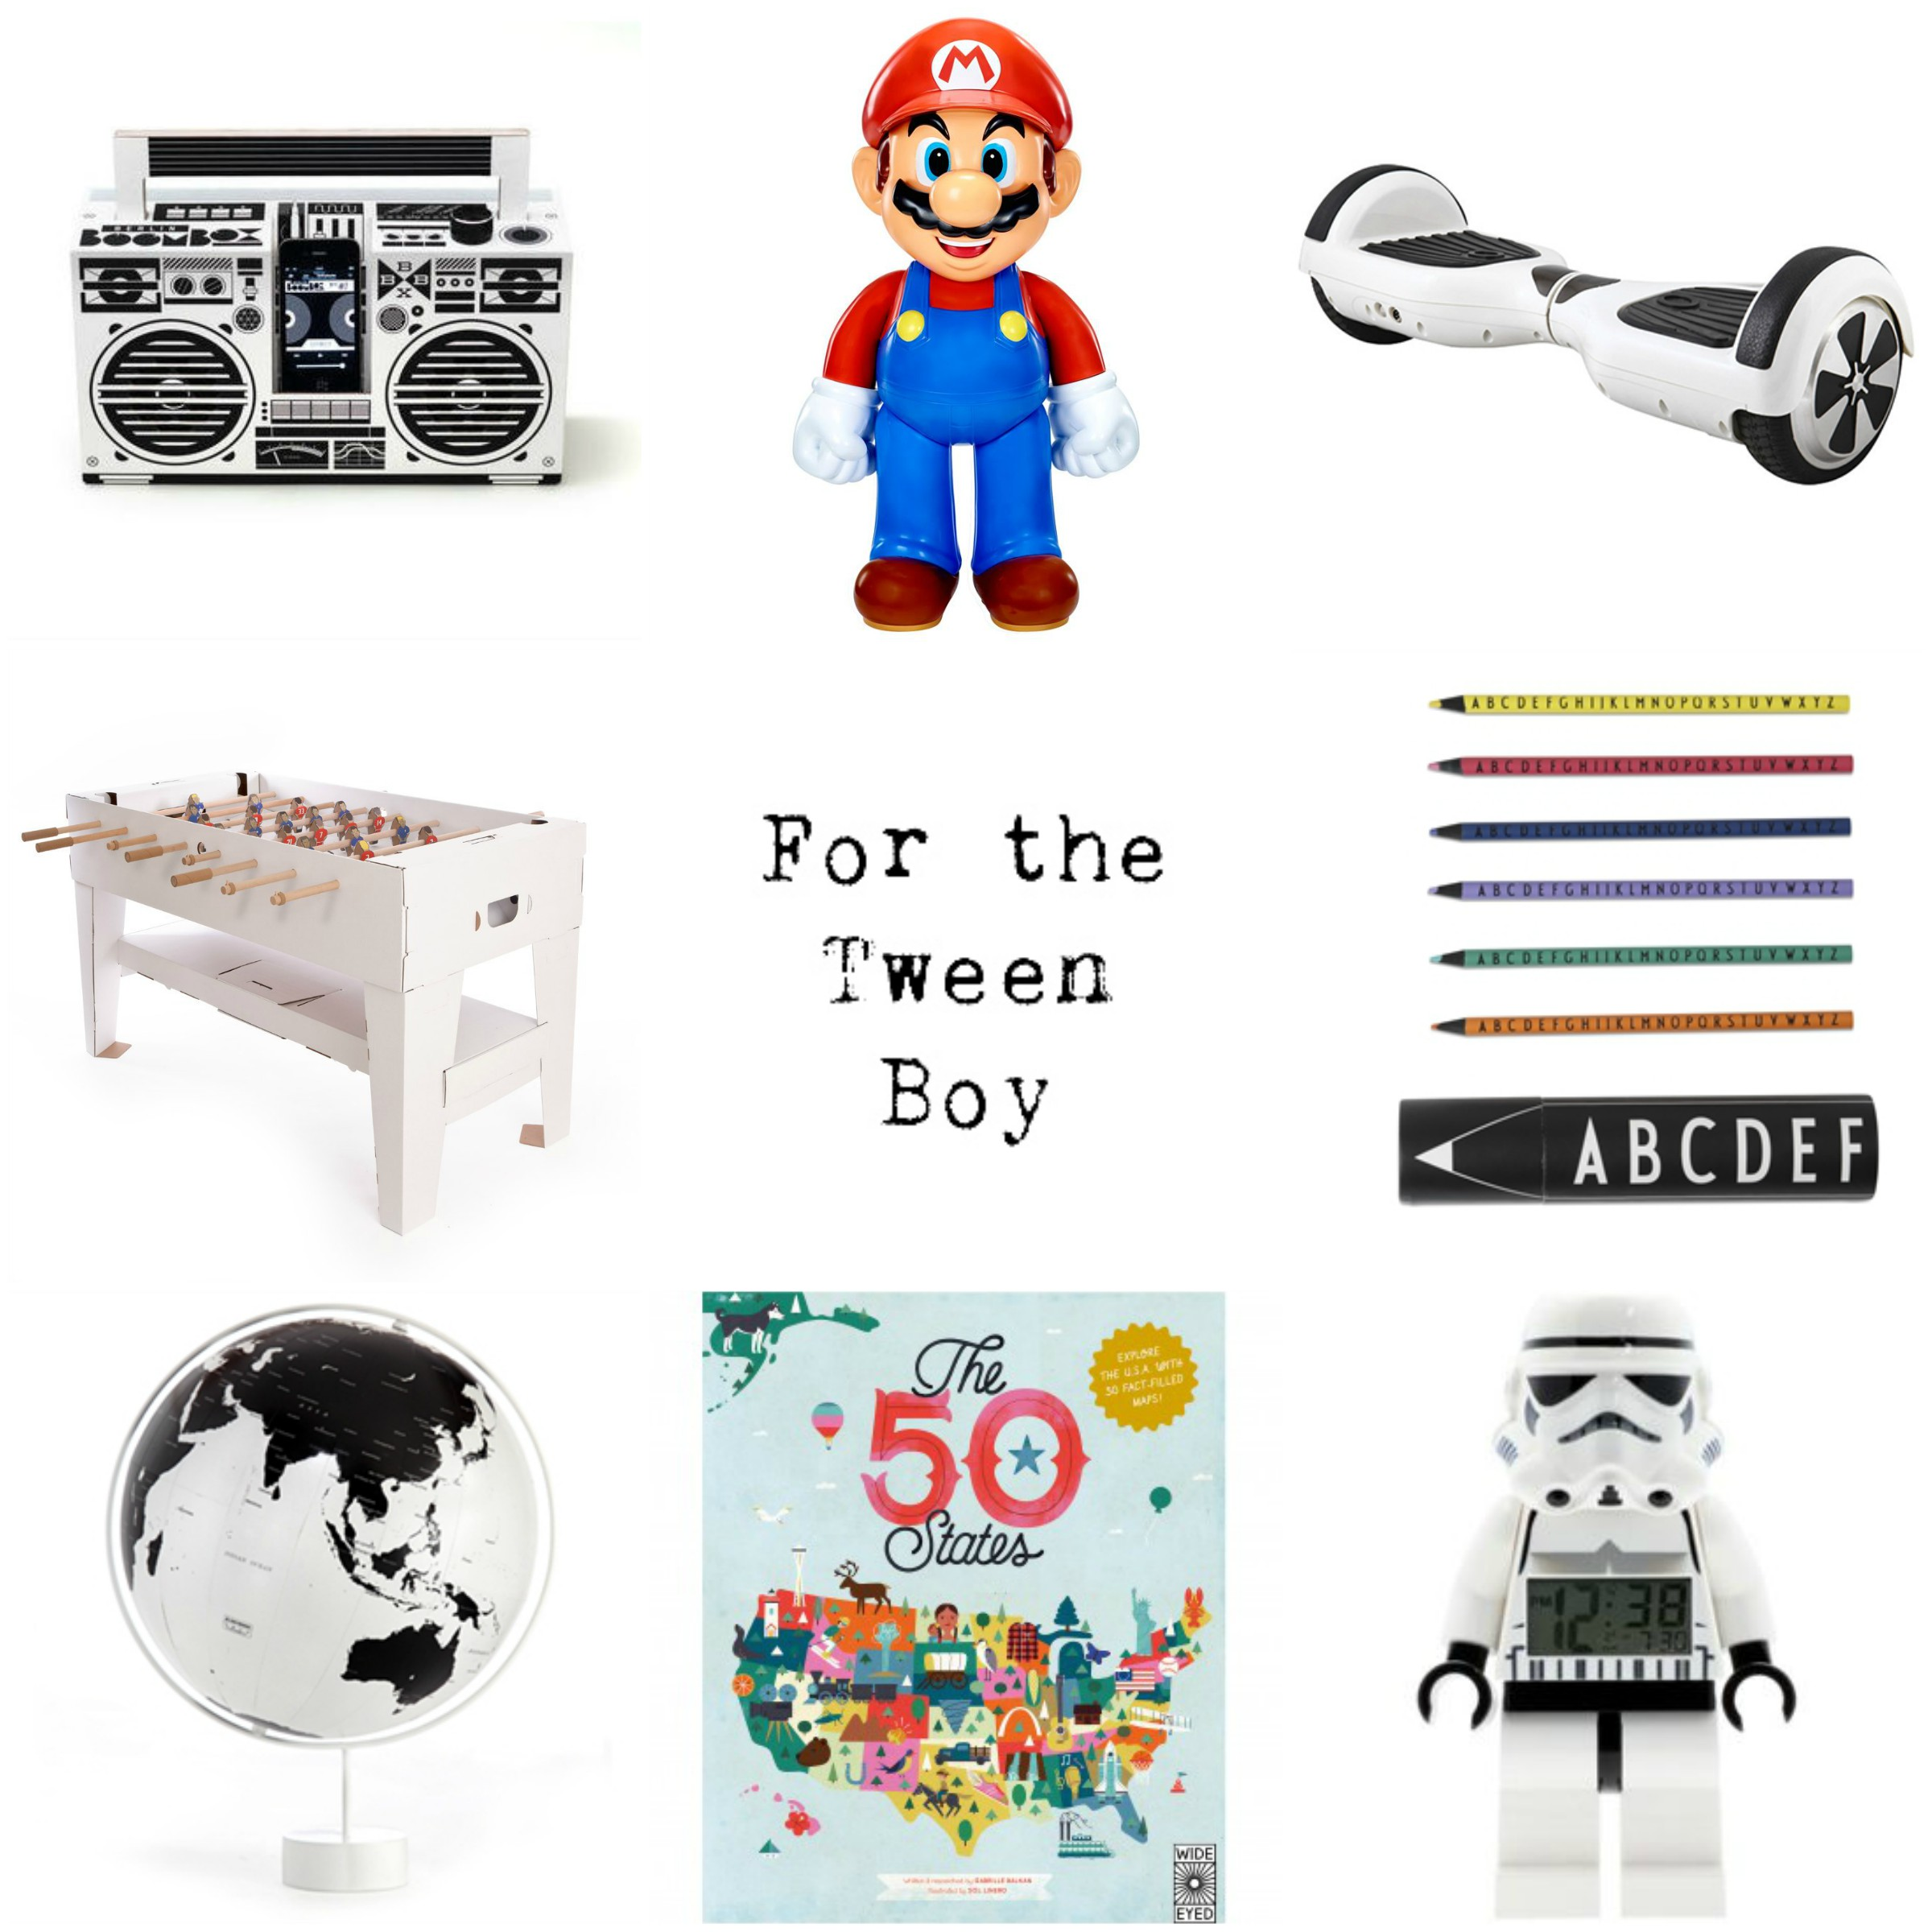 The Uber Kid 2016 Christmas Holiday Gift Guide